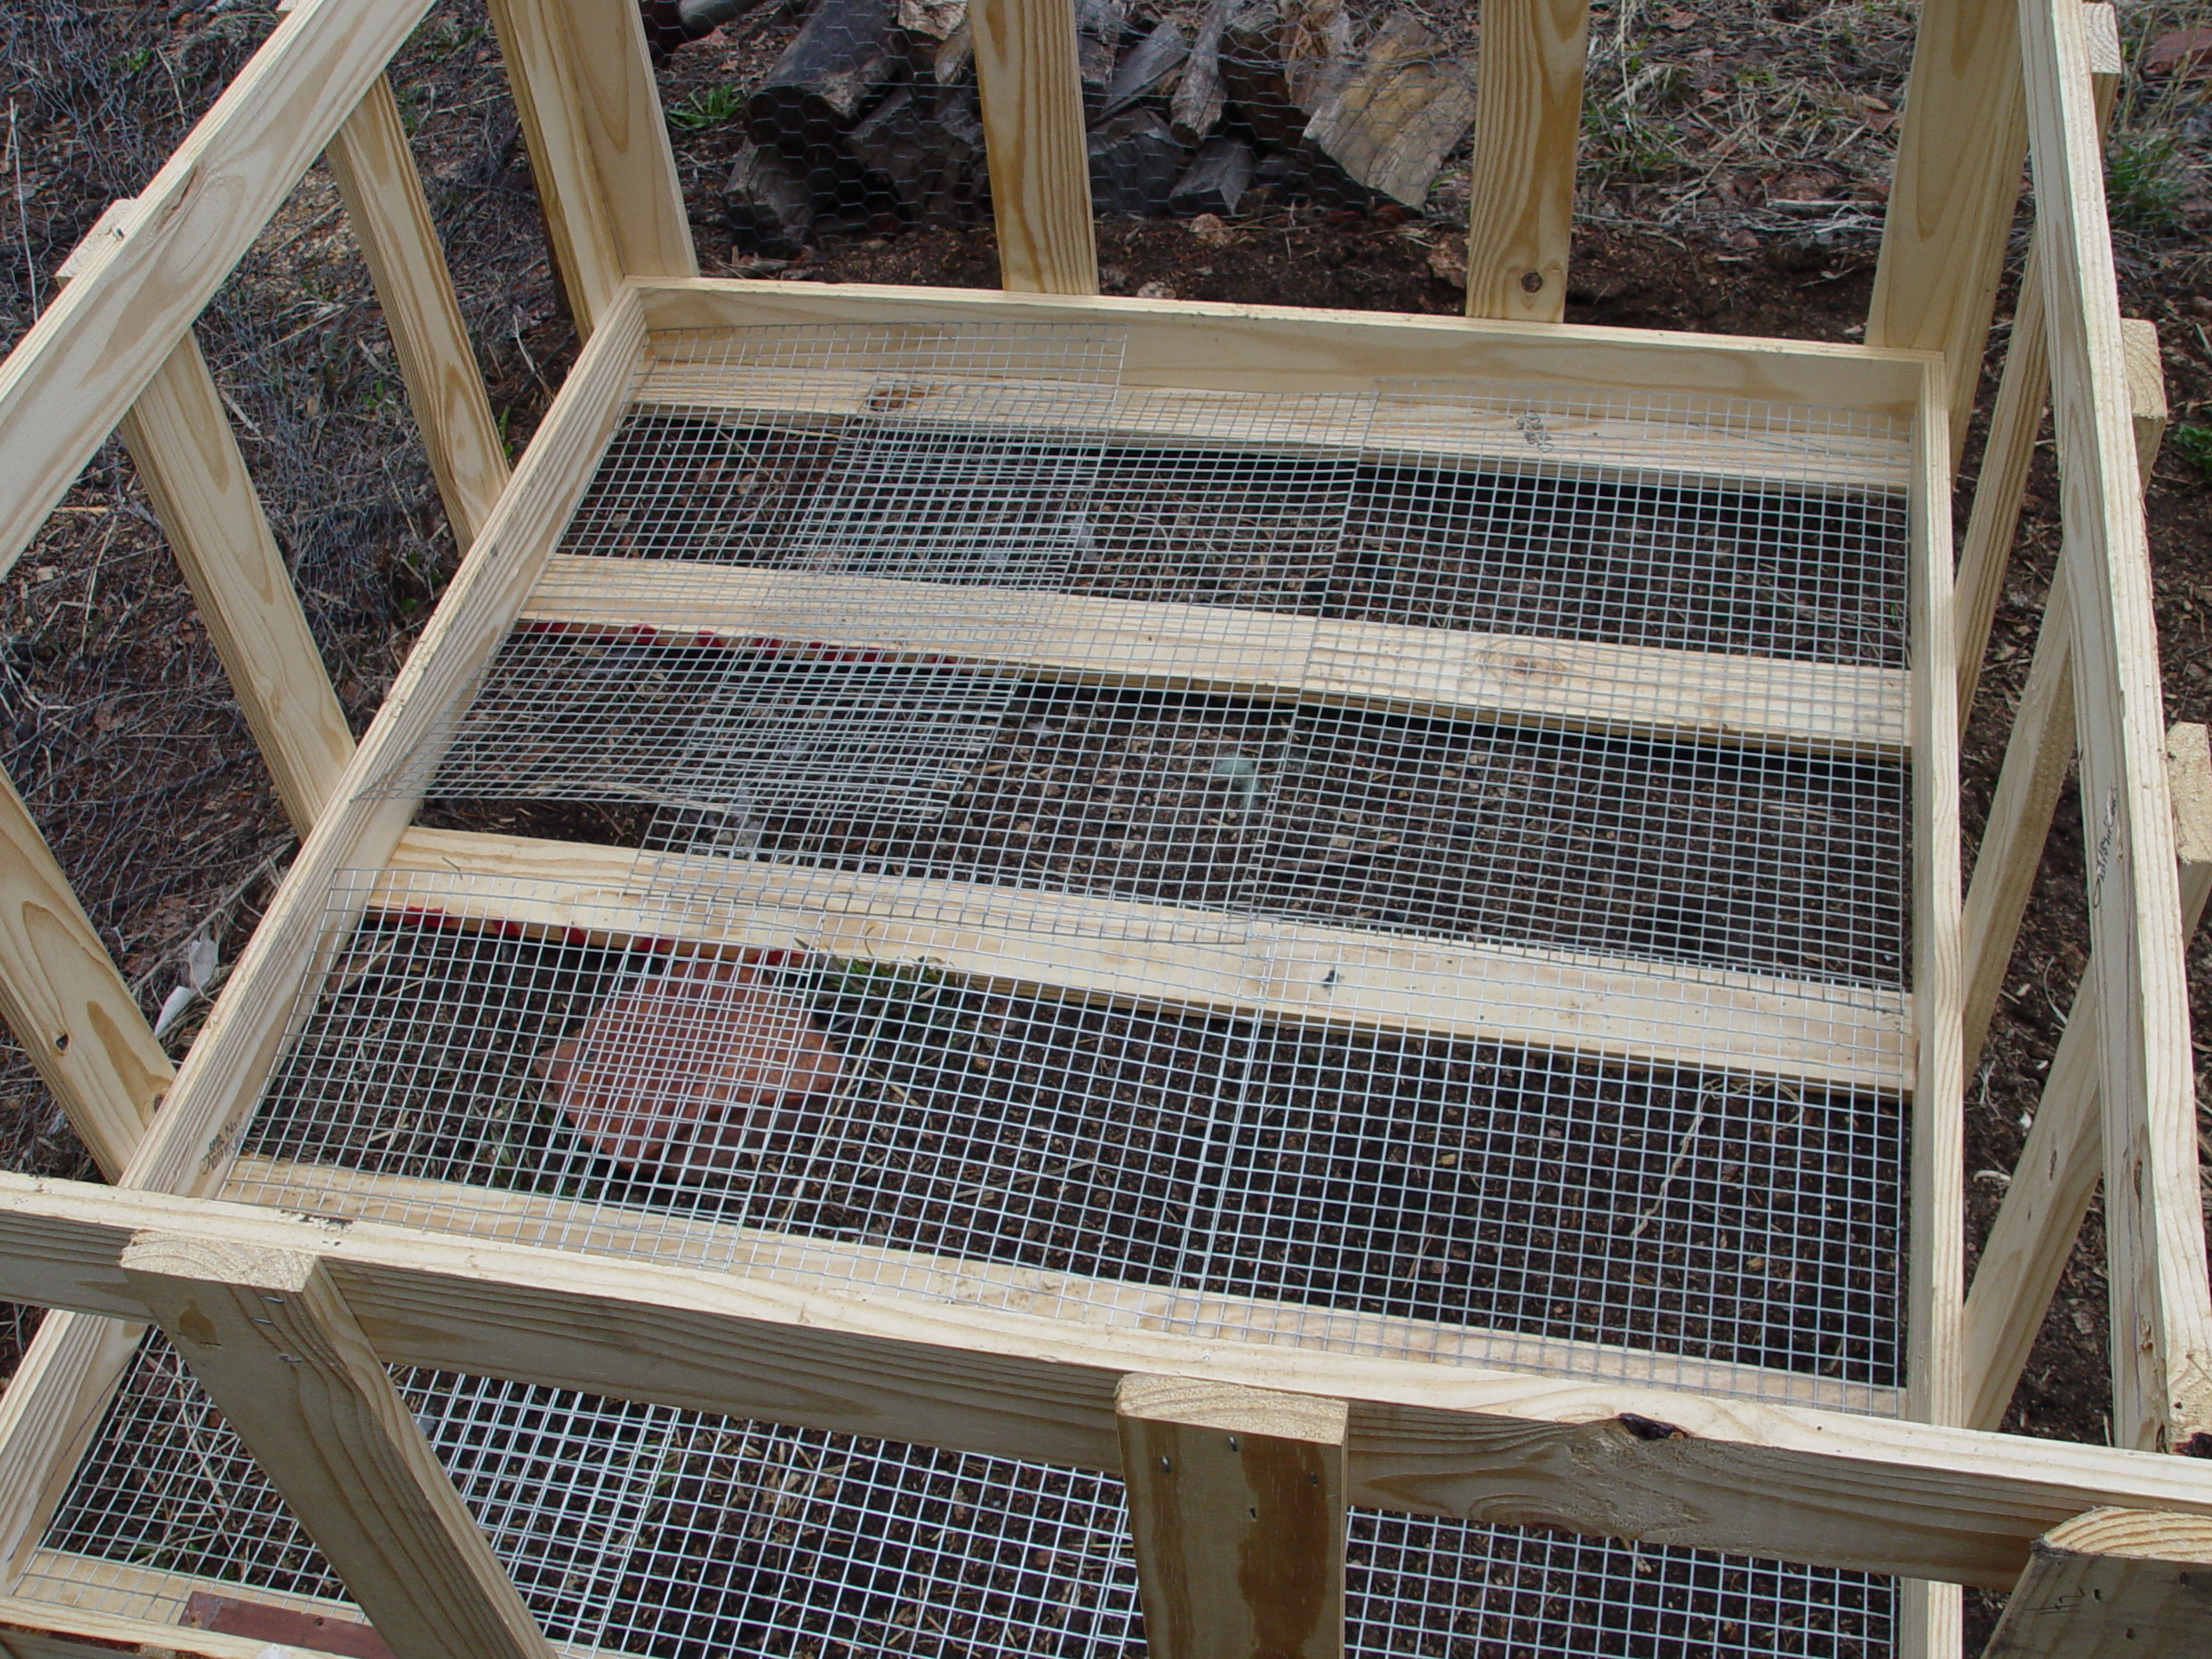 Woodworking diy rabbit hutch from pallets plans pdf download free diy reclaimed wood wine rack - How to make a rabbit cage ...